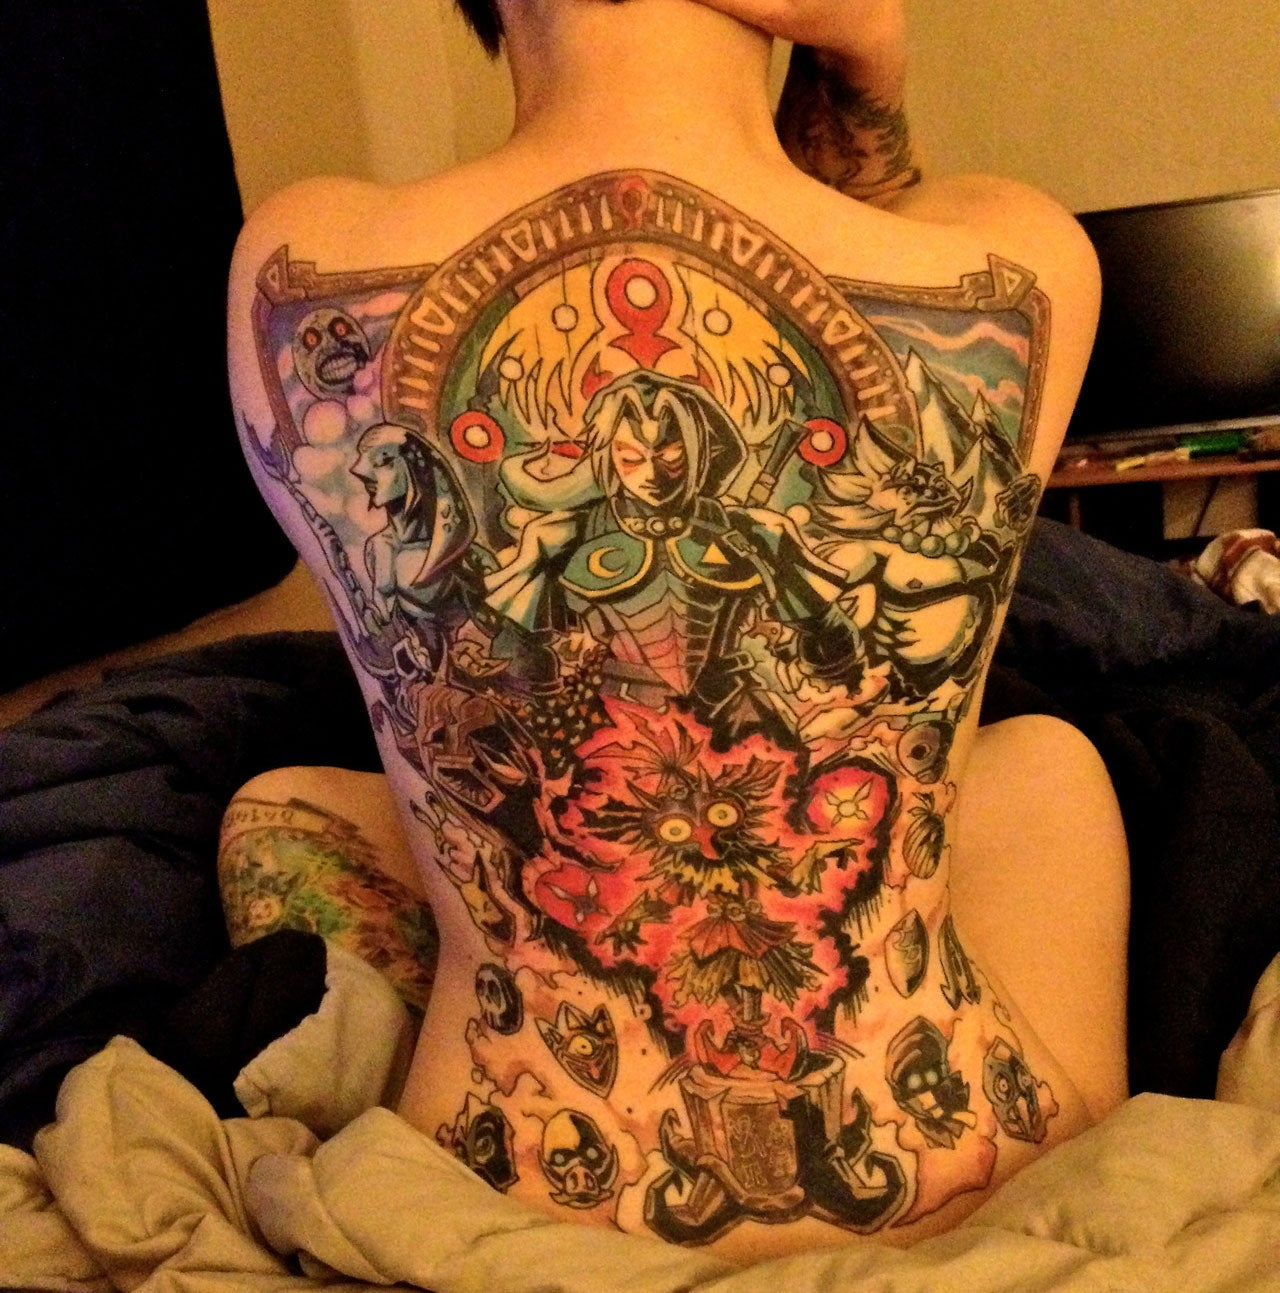 Zelda Tattoo Covers This Woman's Entire Back